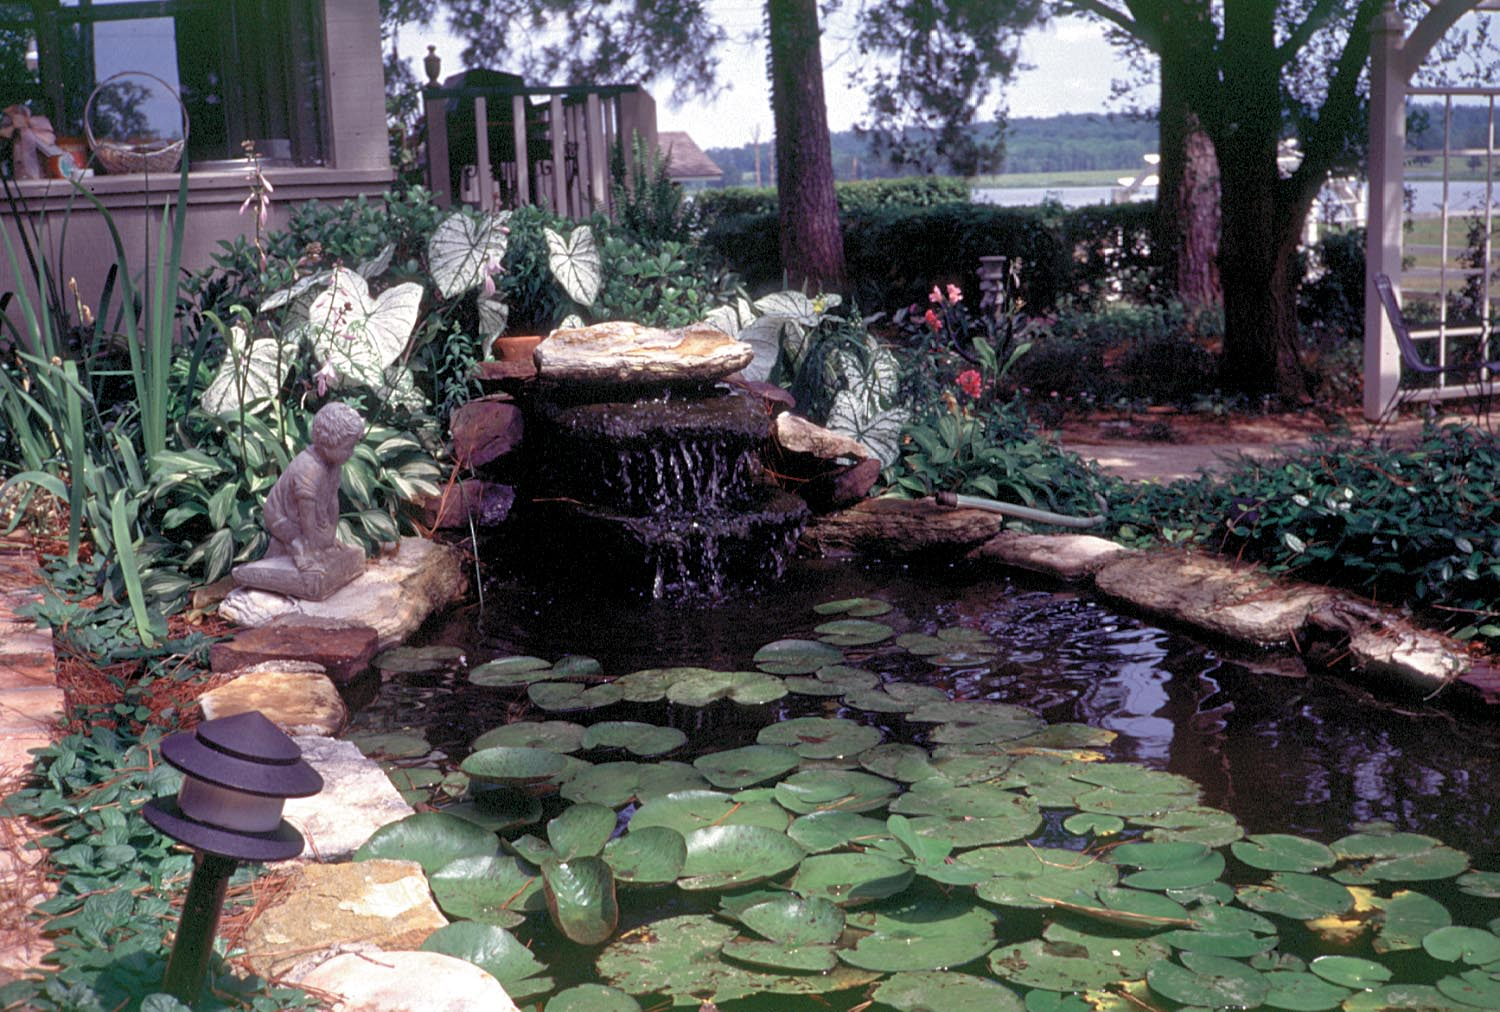 Ornamental ponds and water gardens